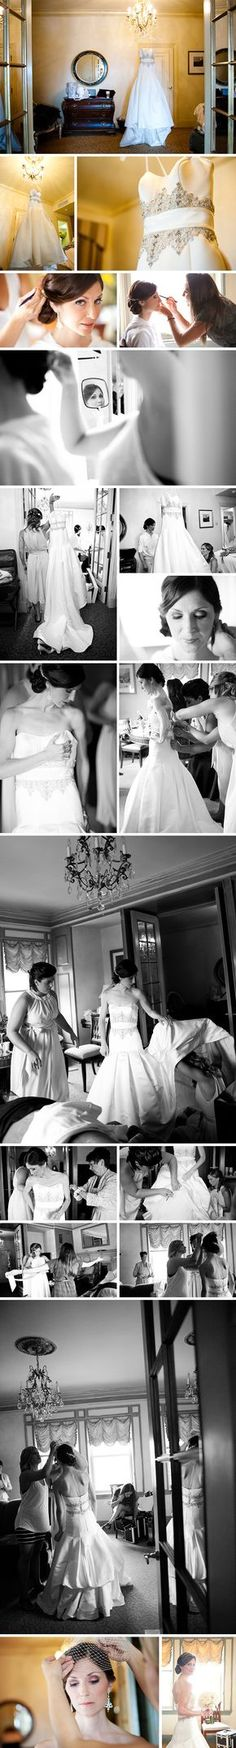 Cute wedding photo poses of Bride getting ready